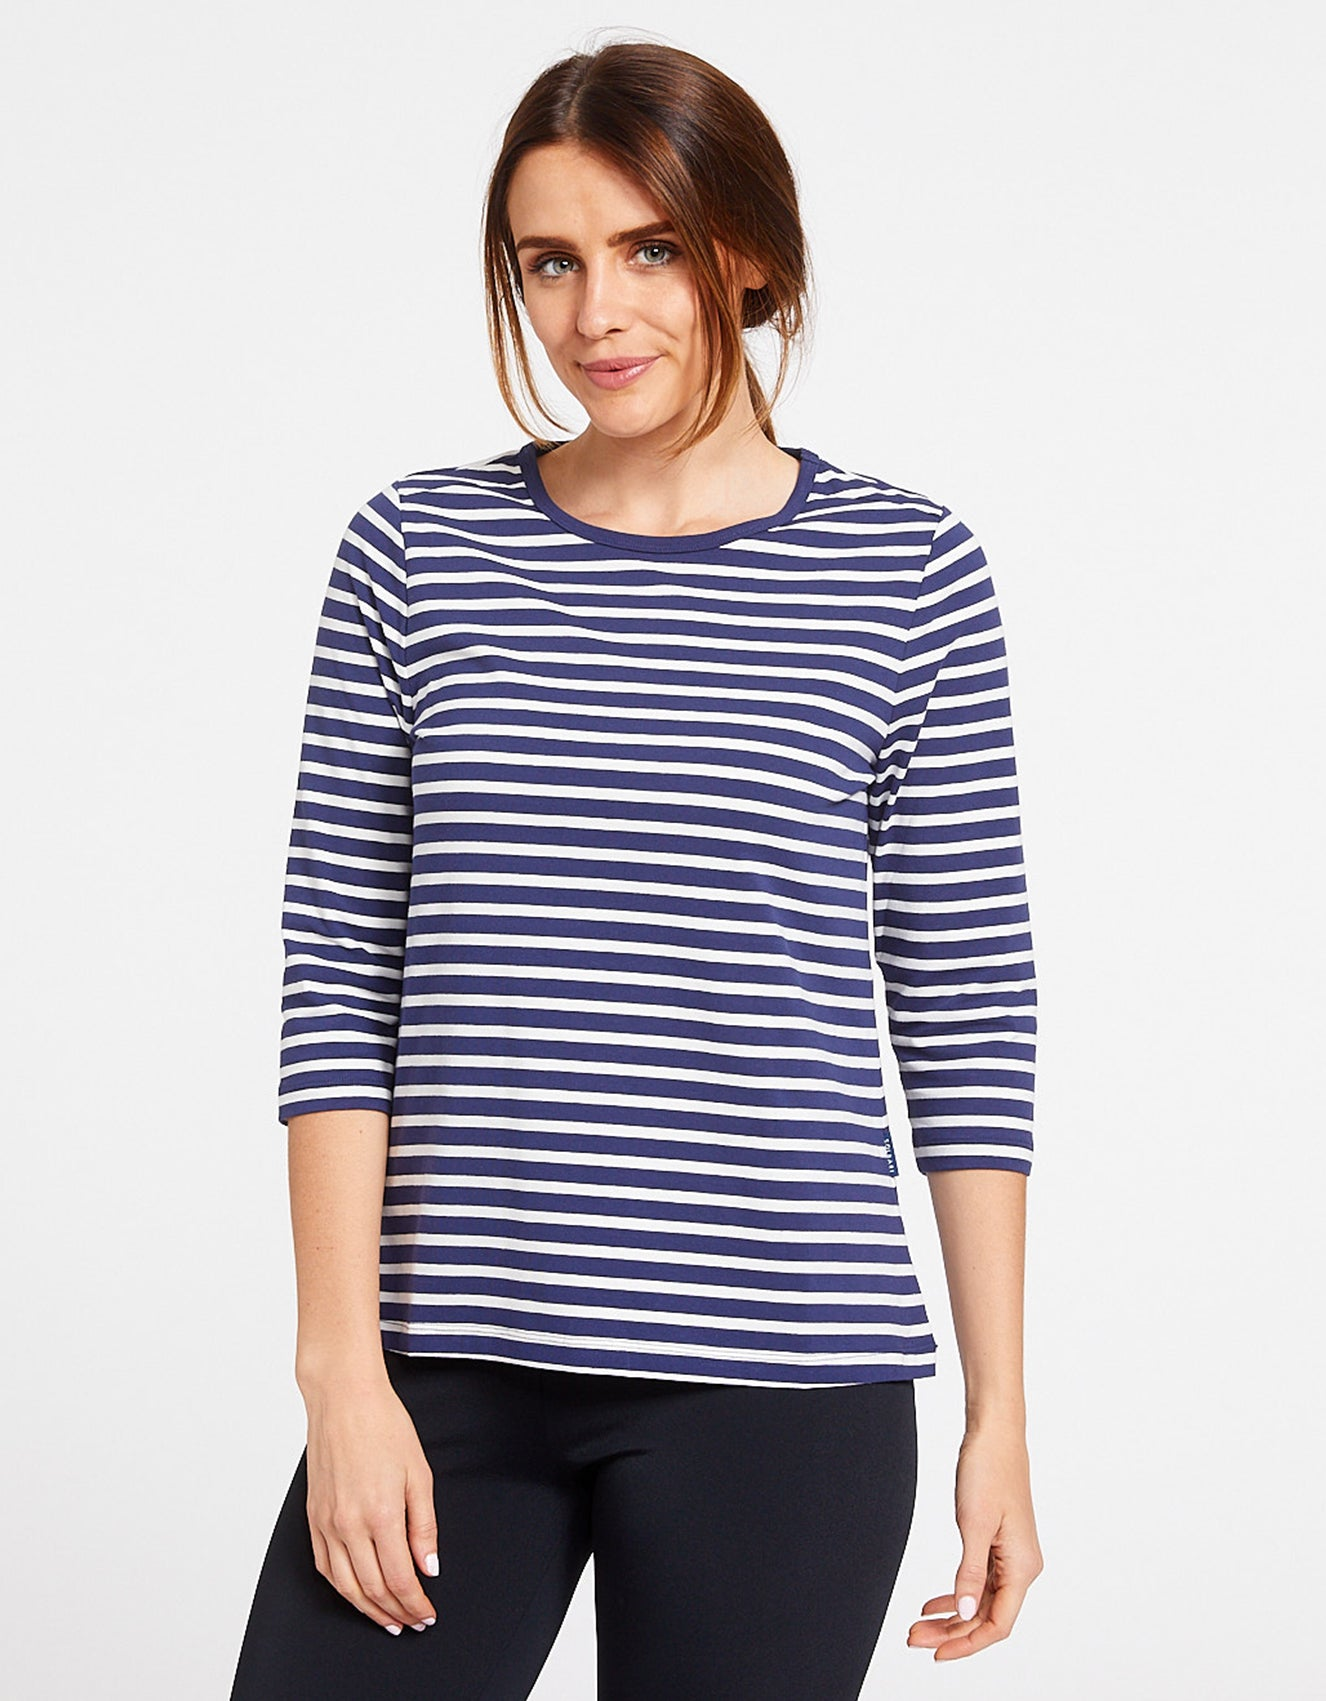 3/4 Sleeve Stripe T-Shirt UPF 50+ Cotton Comfort Collection